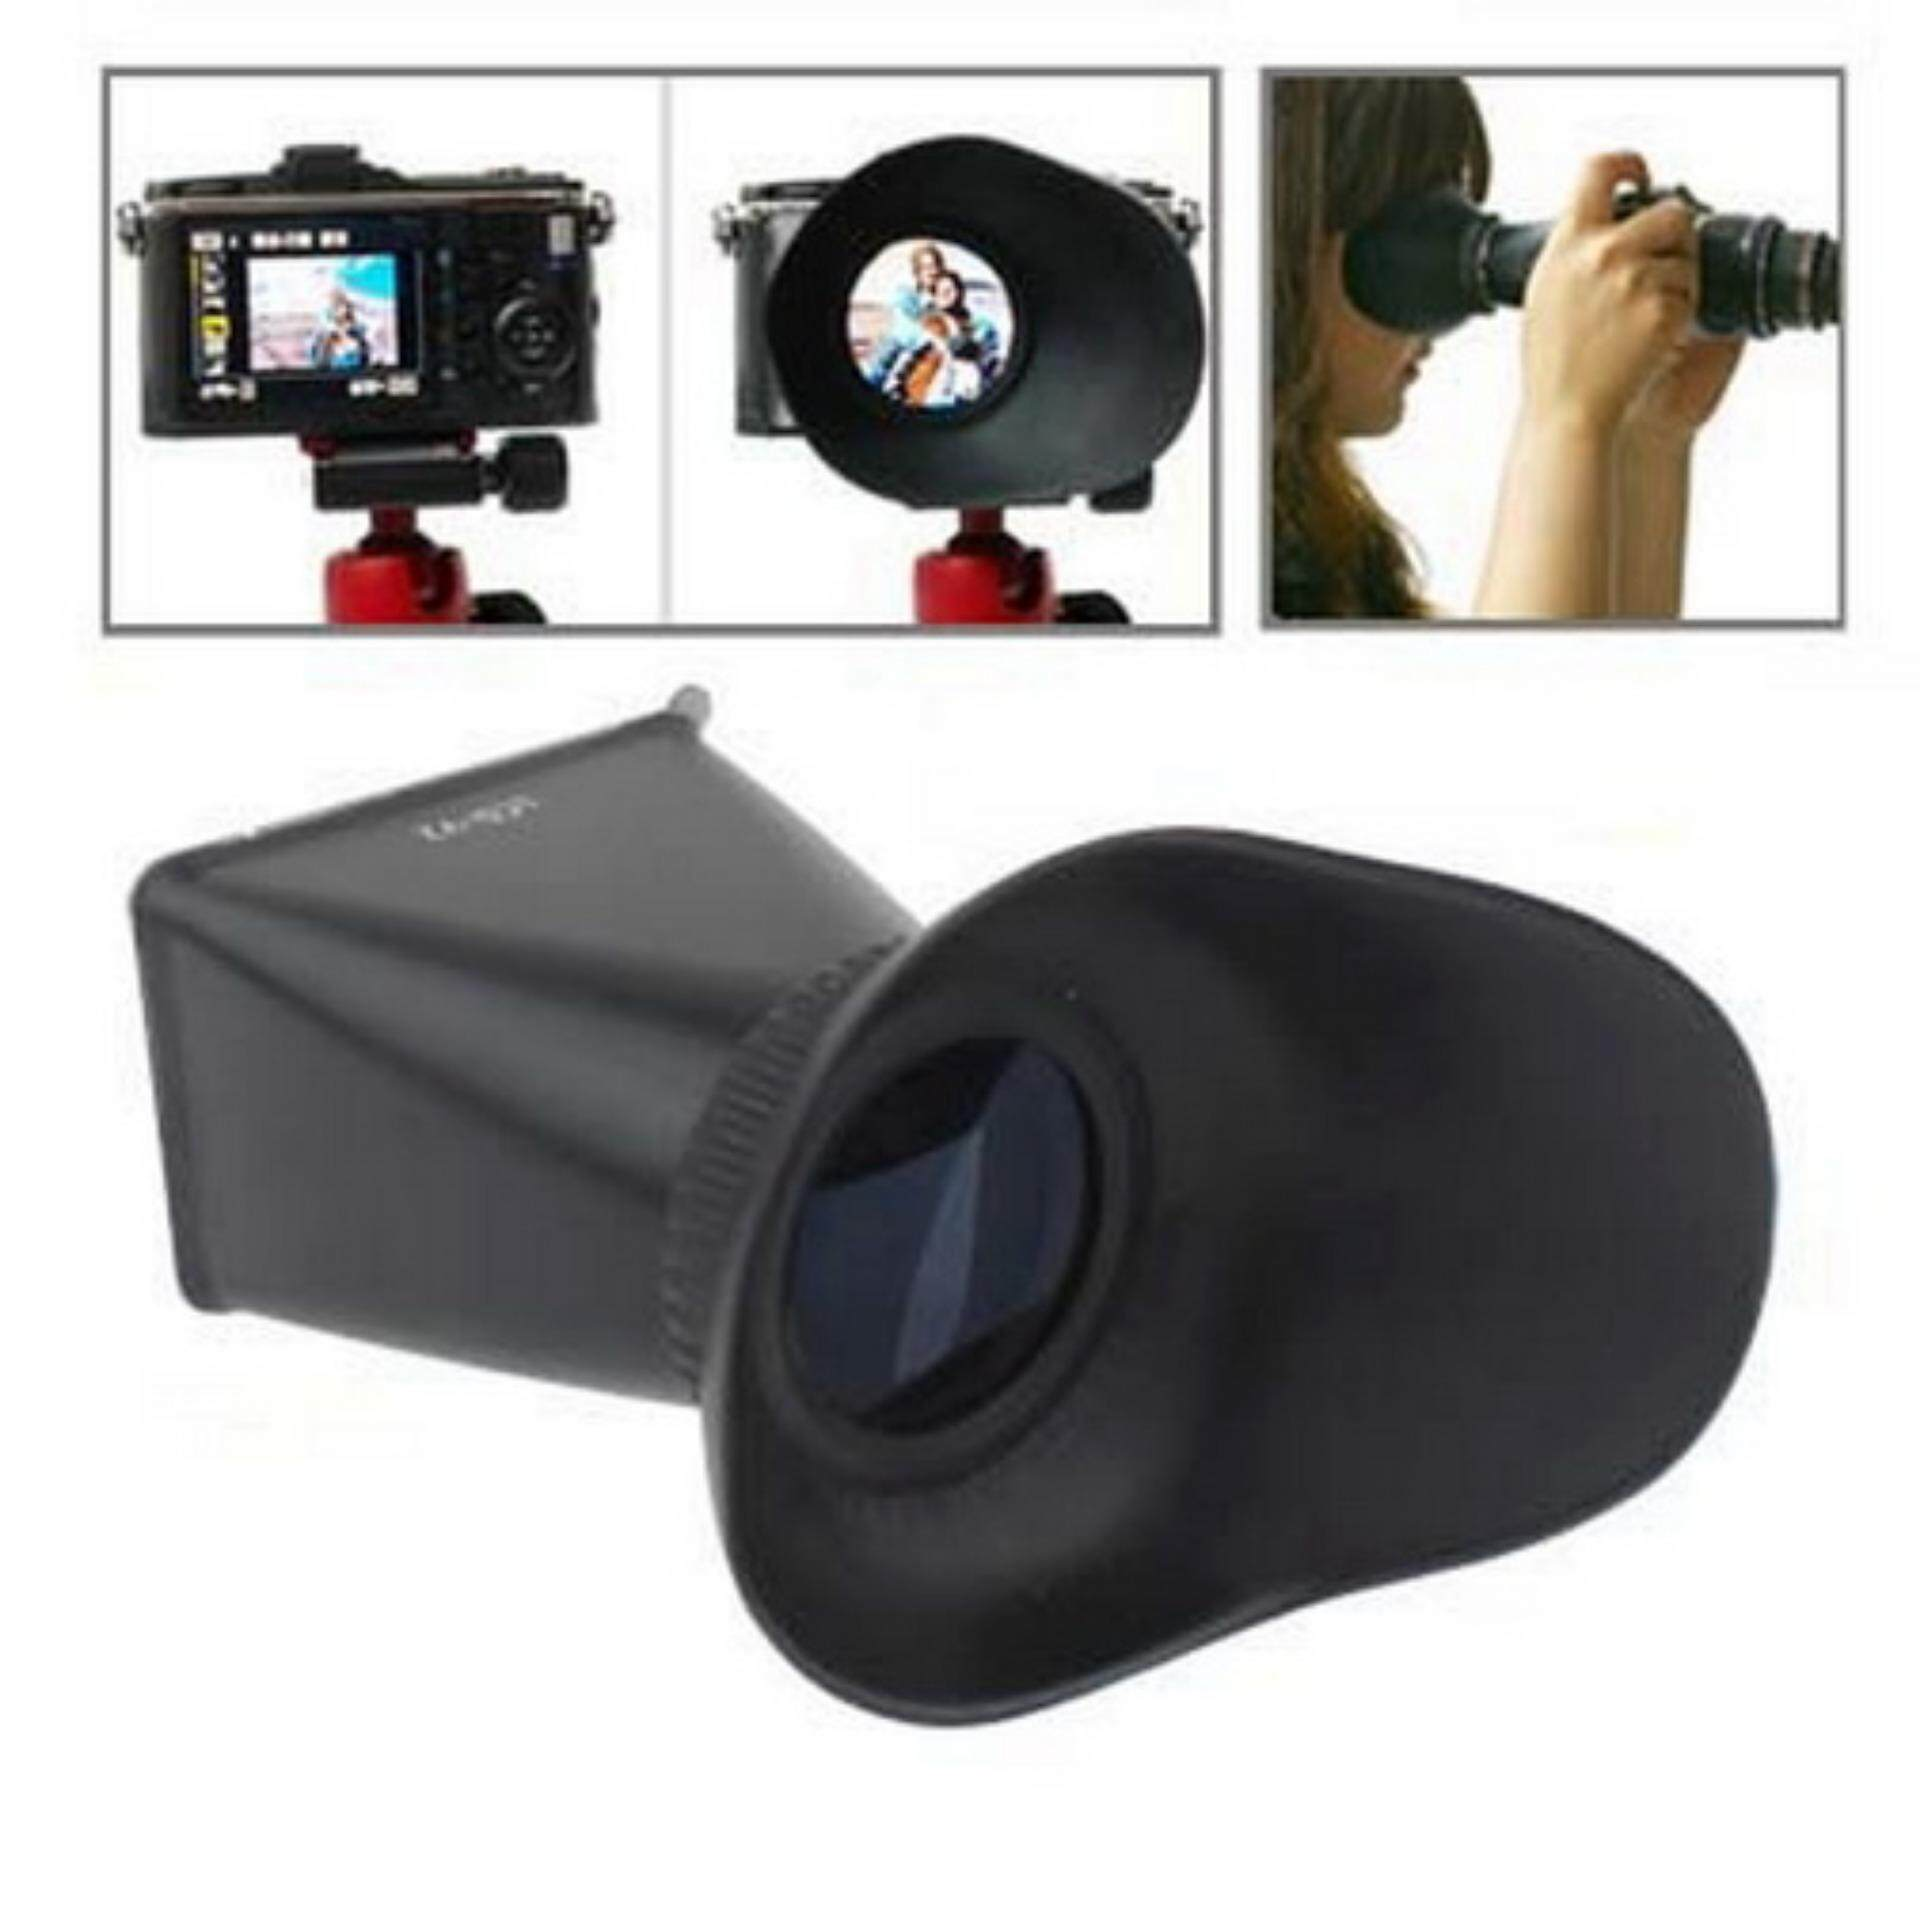 2.8X 3 inch LCD Viewfinder for Canon 550D / Nikon D90 (V2)(Black) - intl